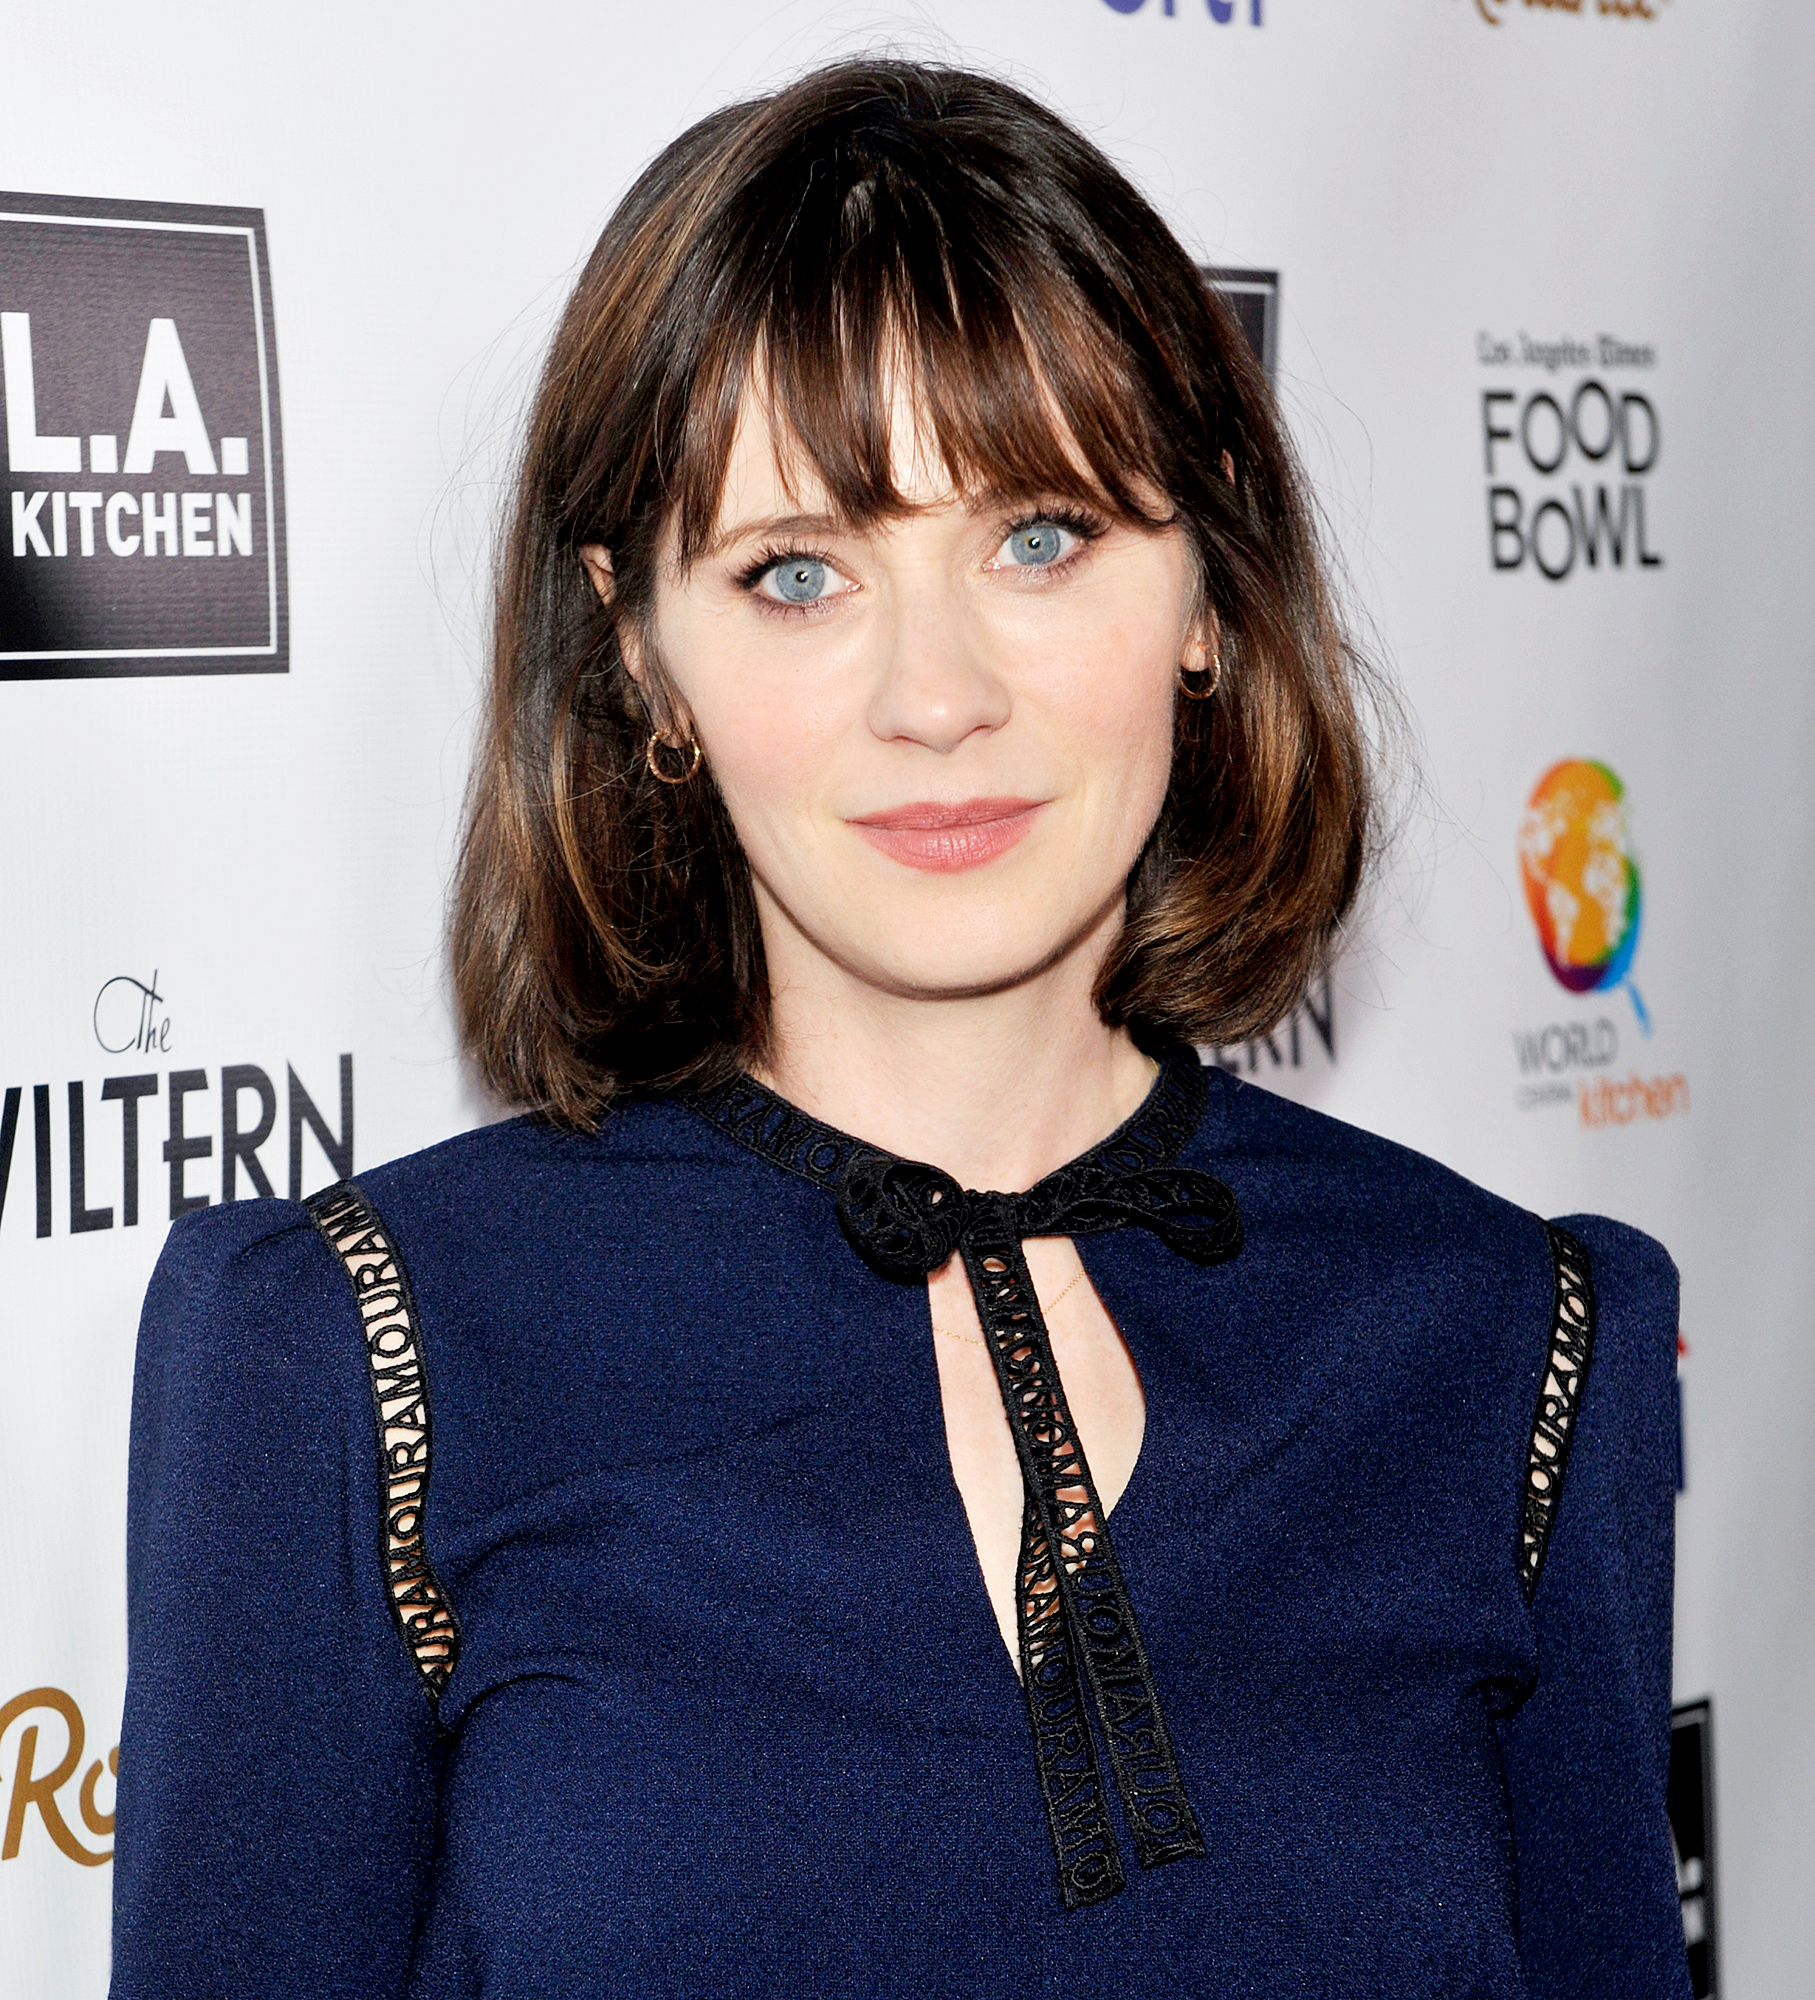 """Elsie-Otter-and-Charlie-Wolf-Pechenik-Zooey-Deschanel - Deschanel and her husband, Jacob Pechenik , gave both their daughter and son, born in 2015 and 2017, respectively, animal-themed middle names. """"We thought Elsie is, like, kind of a classic name. A lot of people have grandmas and aunts name Elsie,"""" the New Girl alum said on The Ellen DeGeneres Show in 2016."""